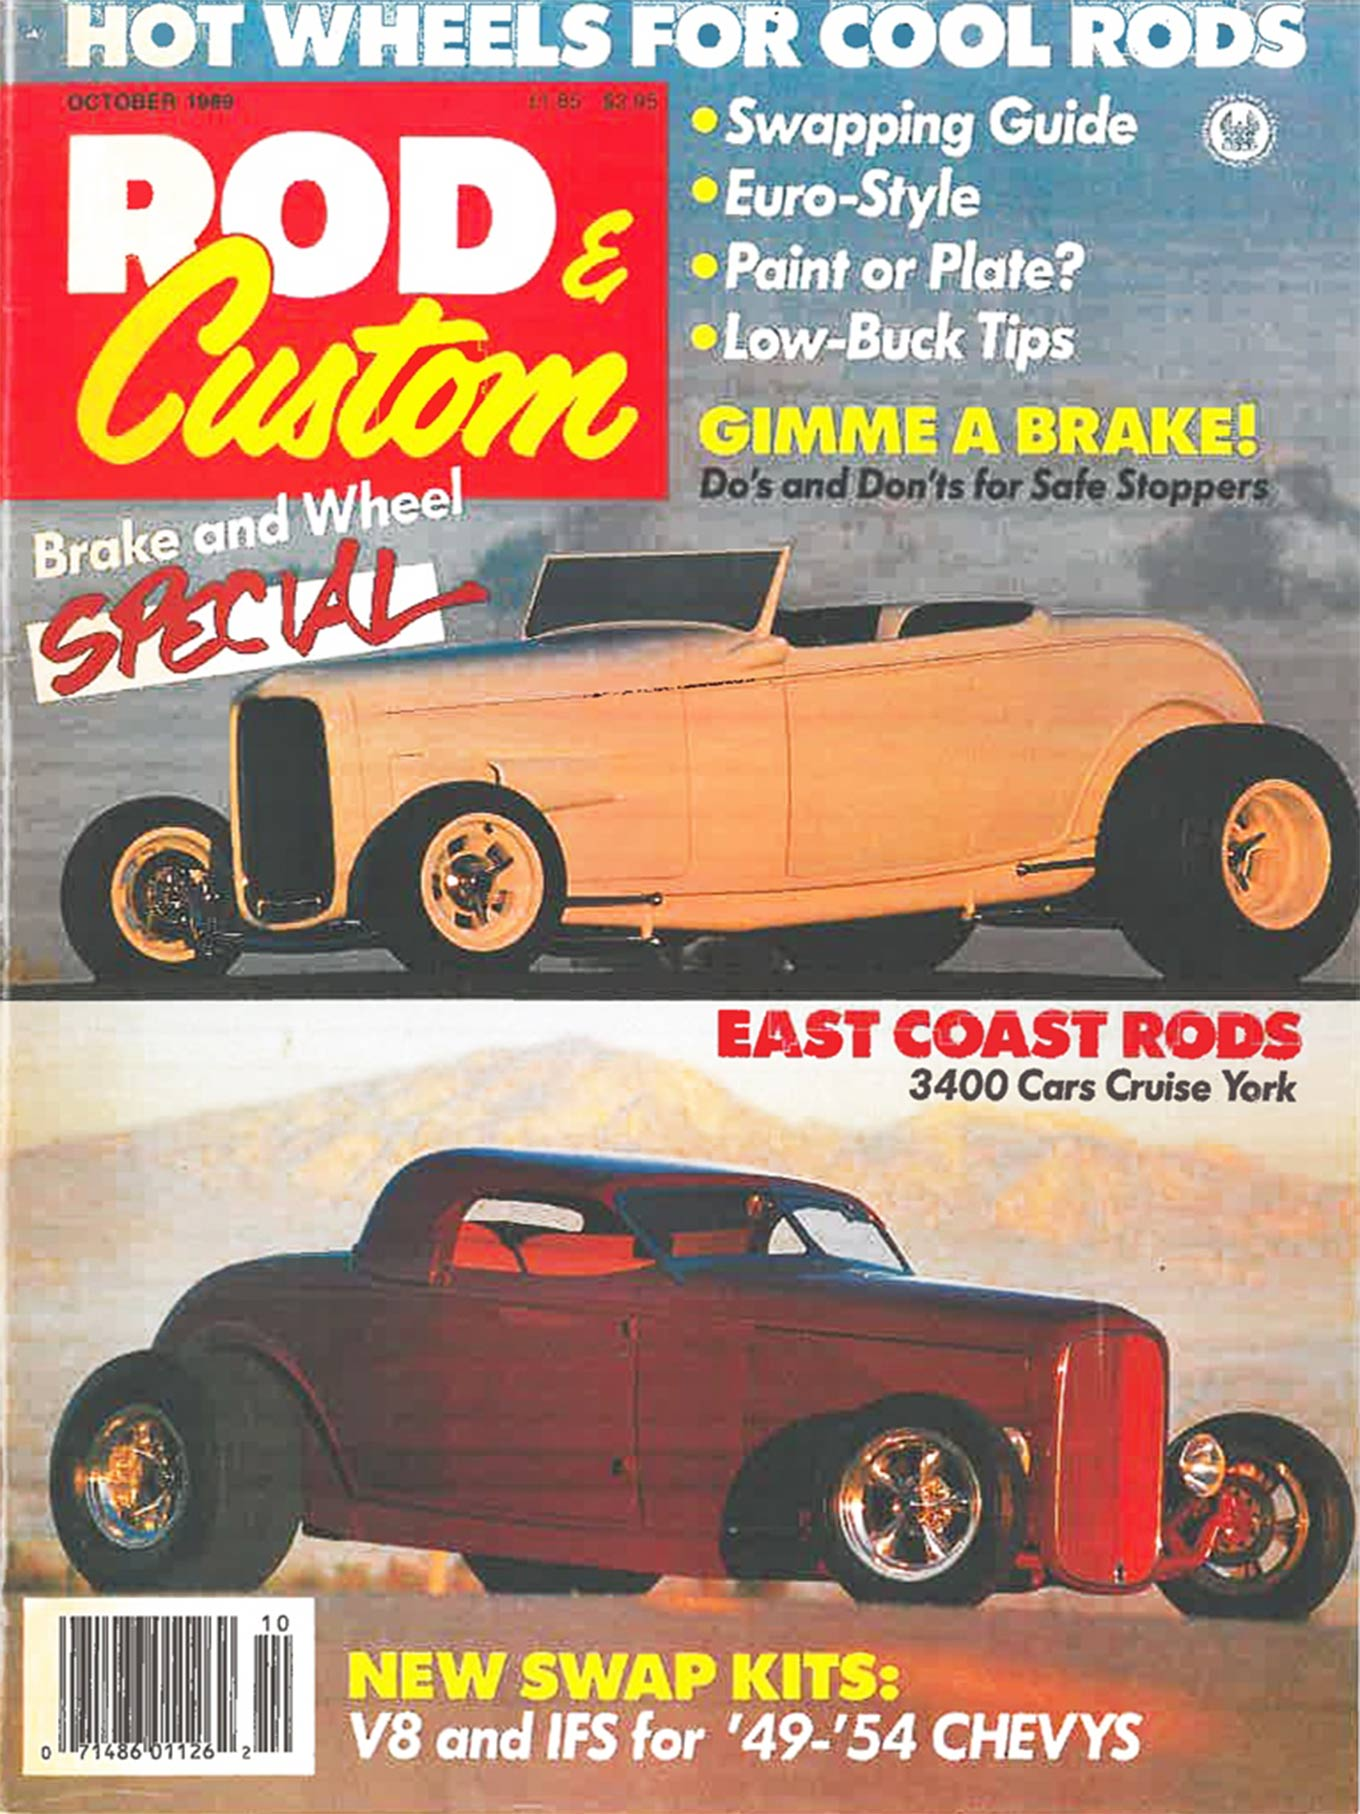 The roadster was back on the cover of Rod & Custom only two issues after is first appearance.